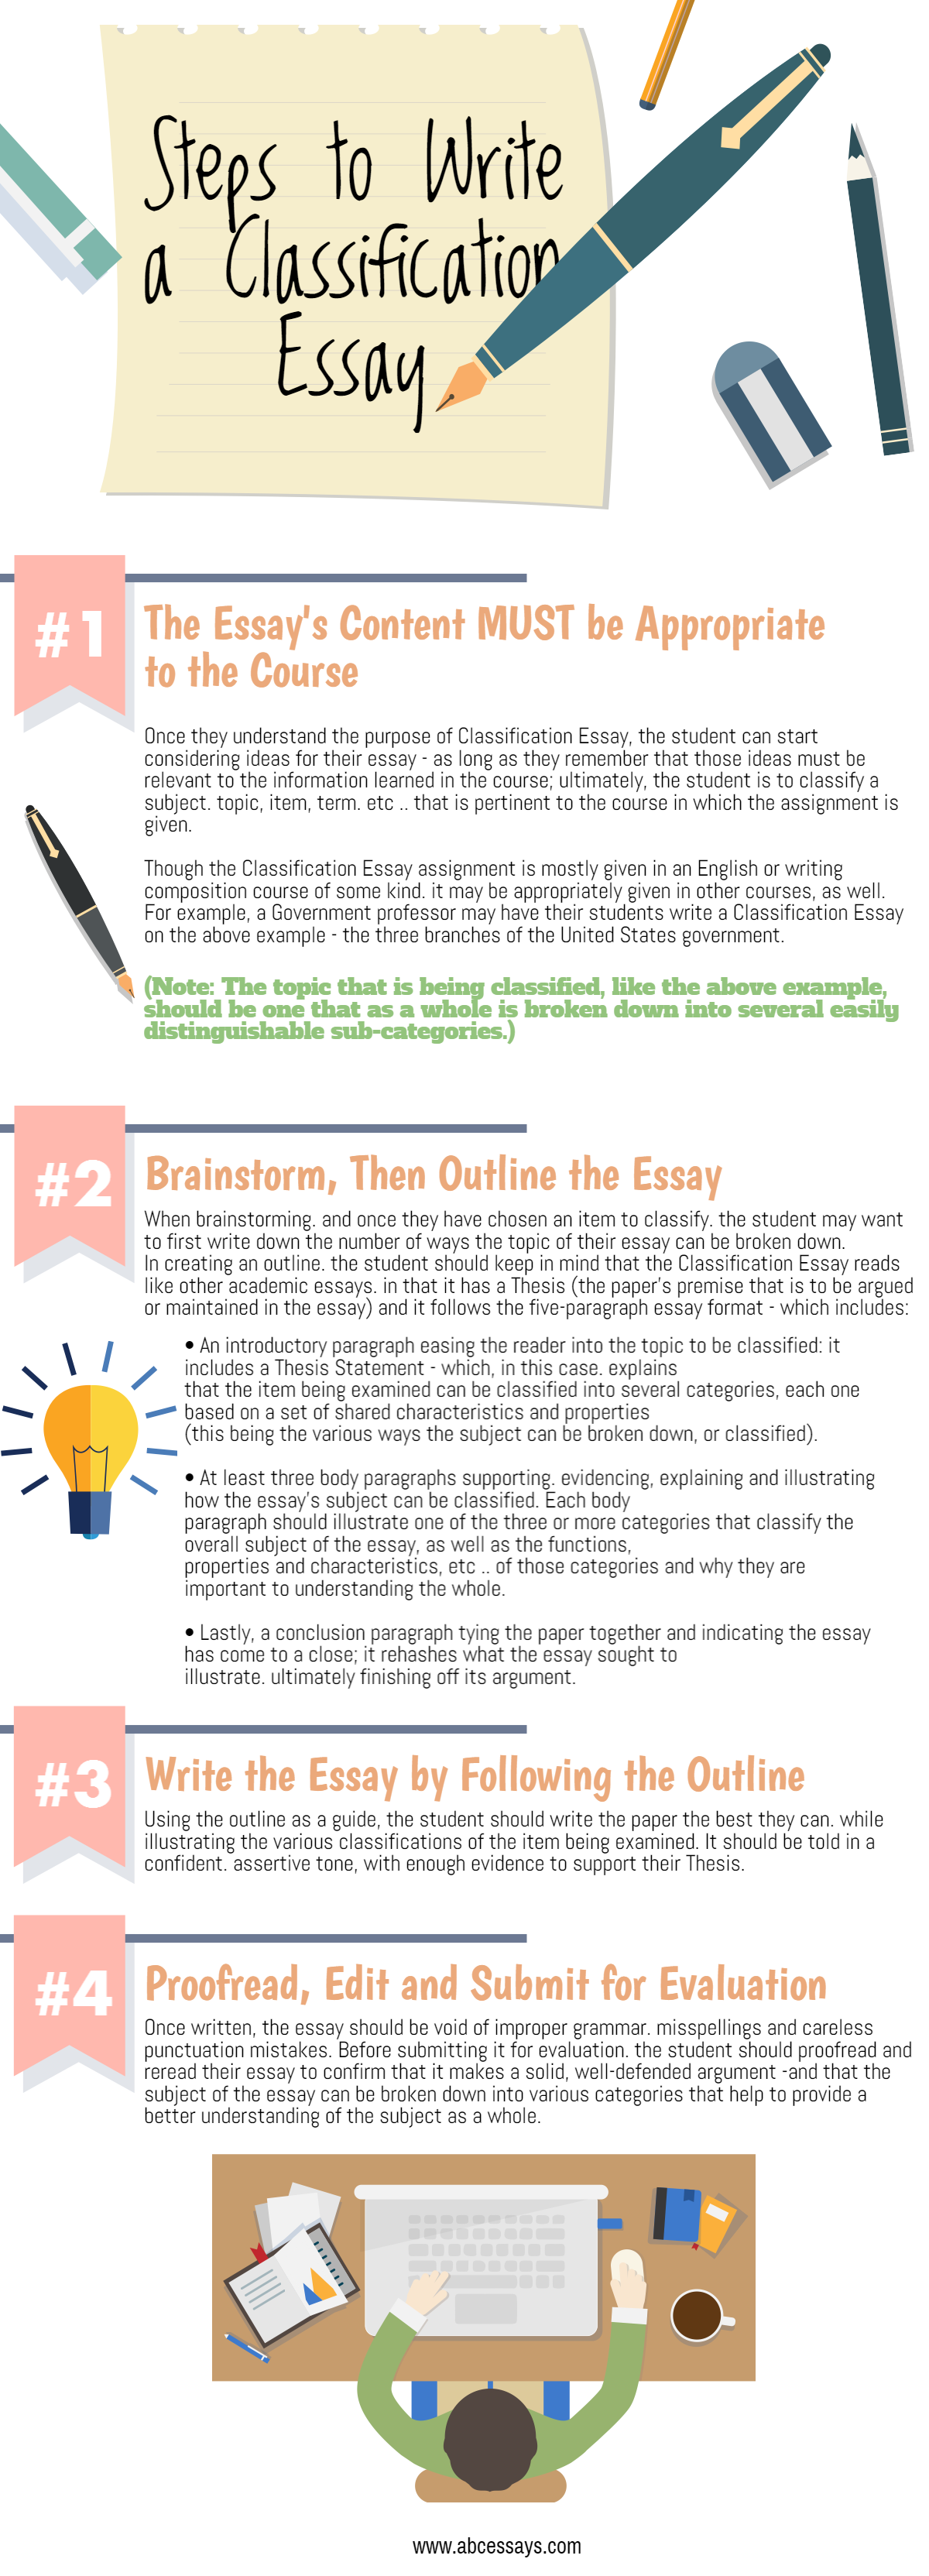 steps to writing a classification essay include choosing topic   industrial revolution dbq essay jan 2011 · get access to industrial revolution dbq essays only dbq outline industrial revolution dbq outline positive